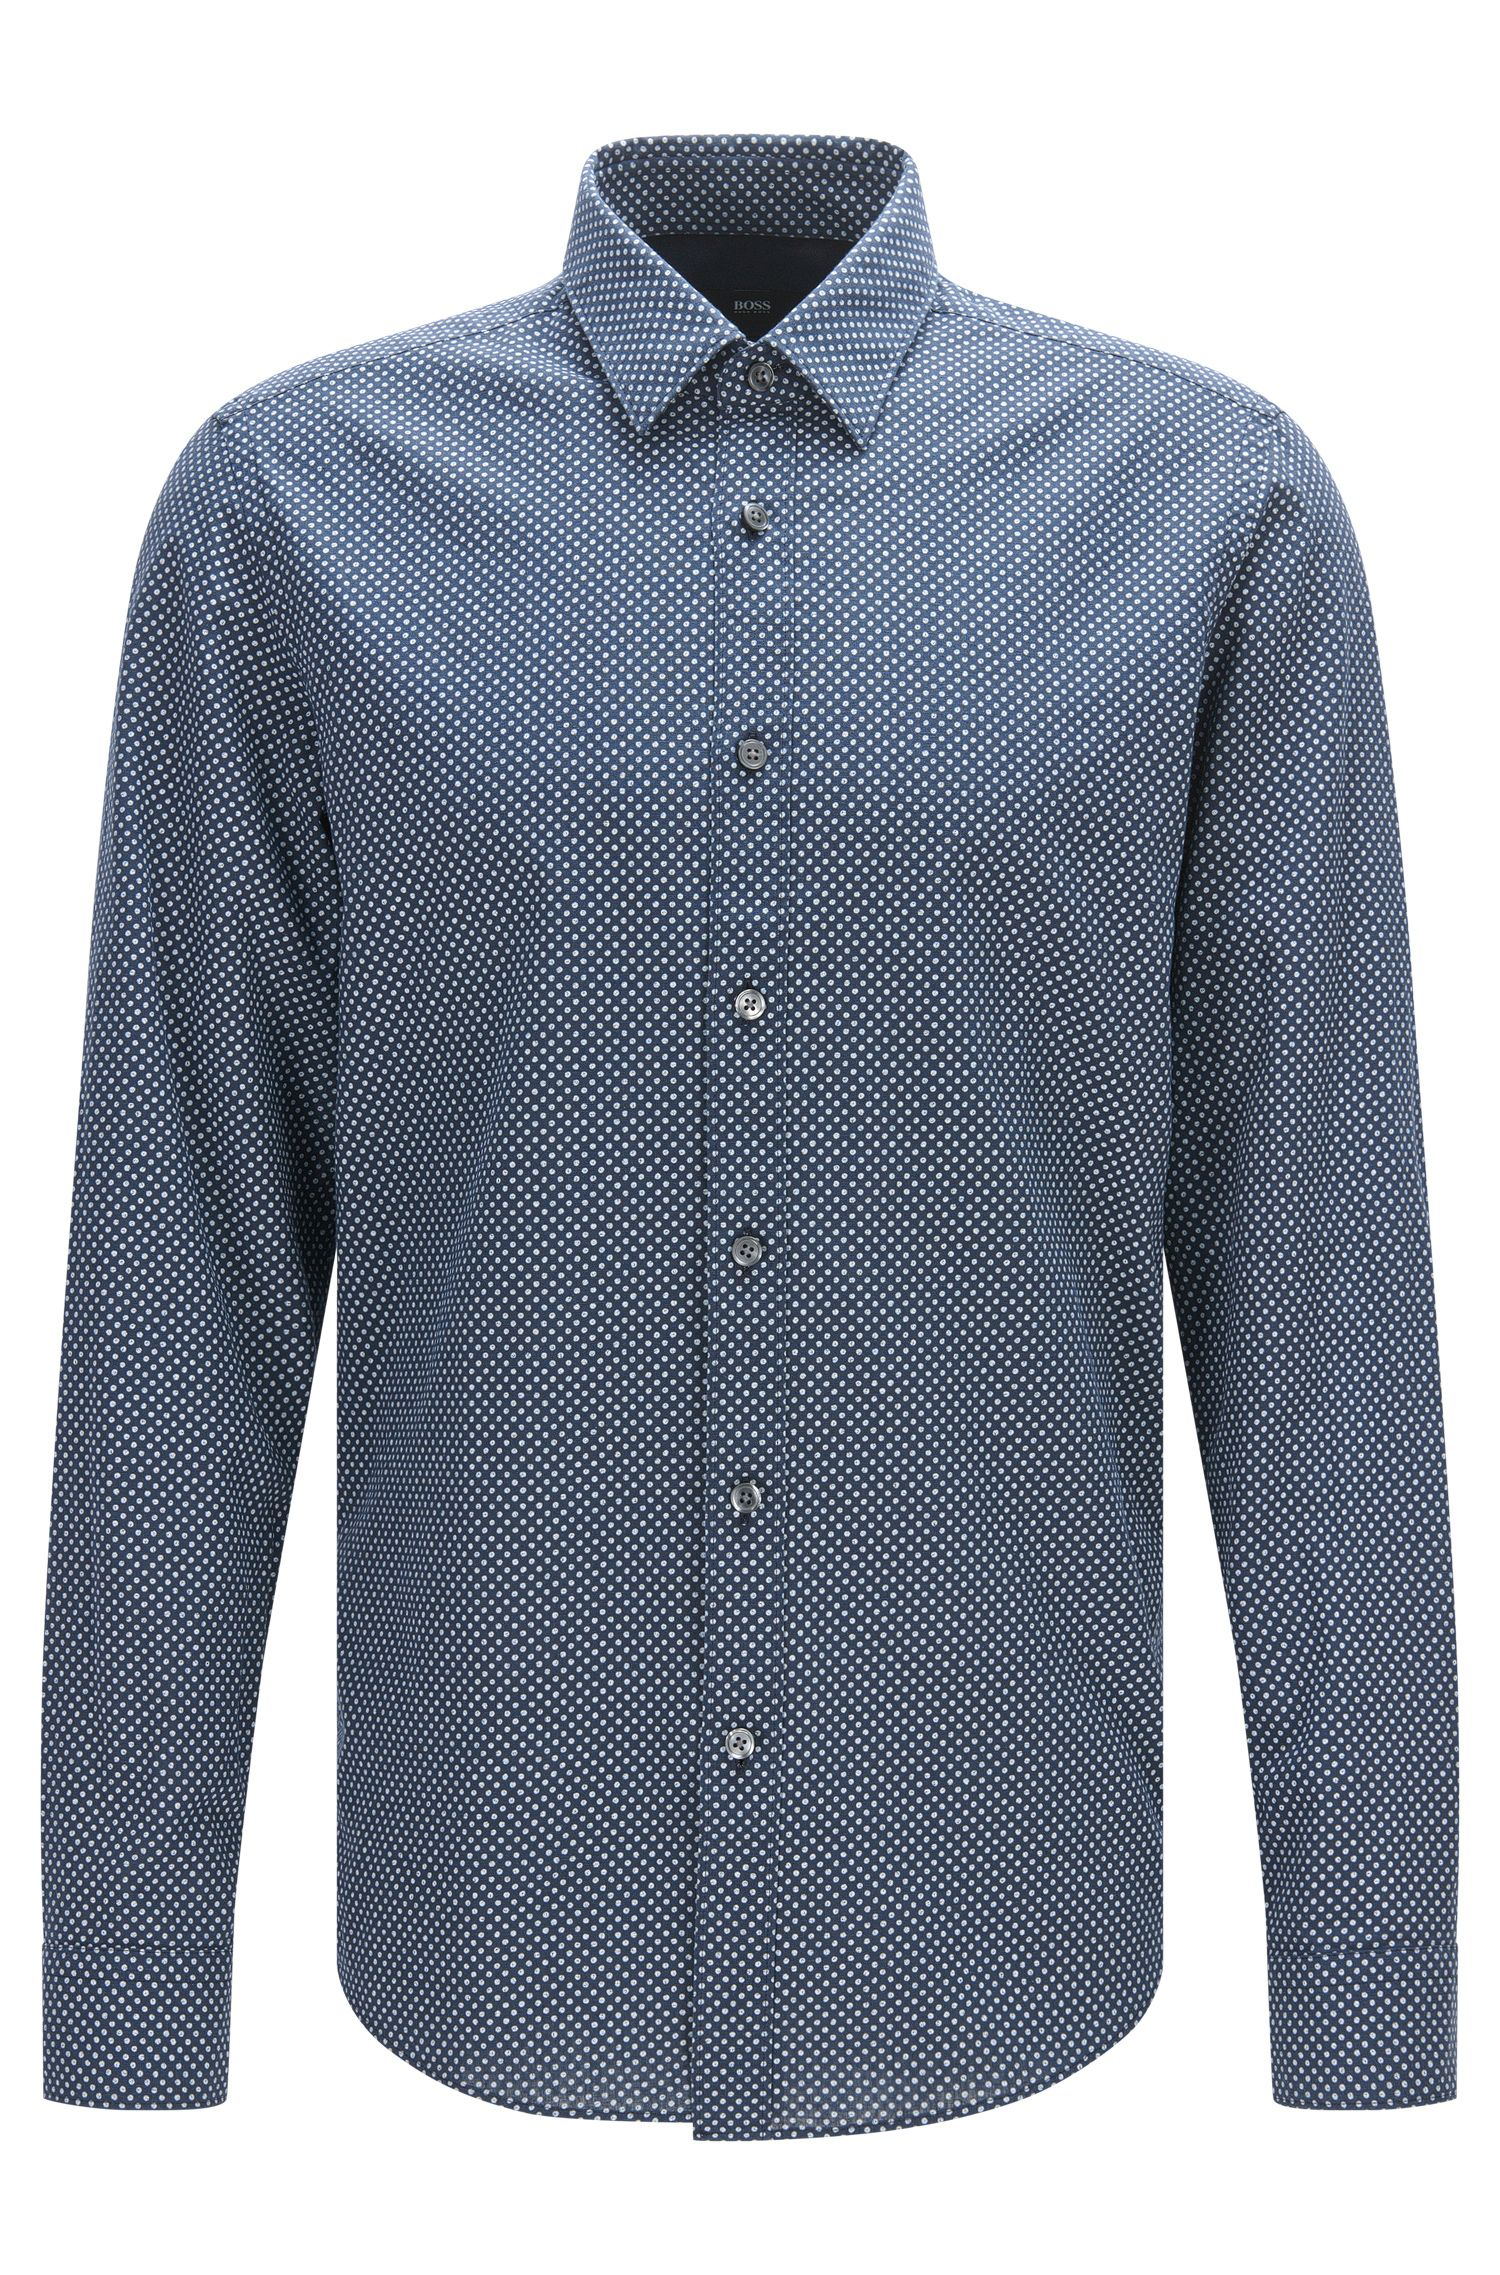 Polka-dot patterned regular-fit shirt in a linen blend with cotton: 'Lukas_44'